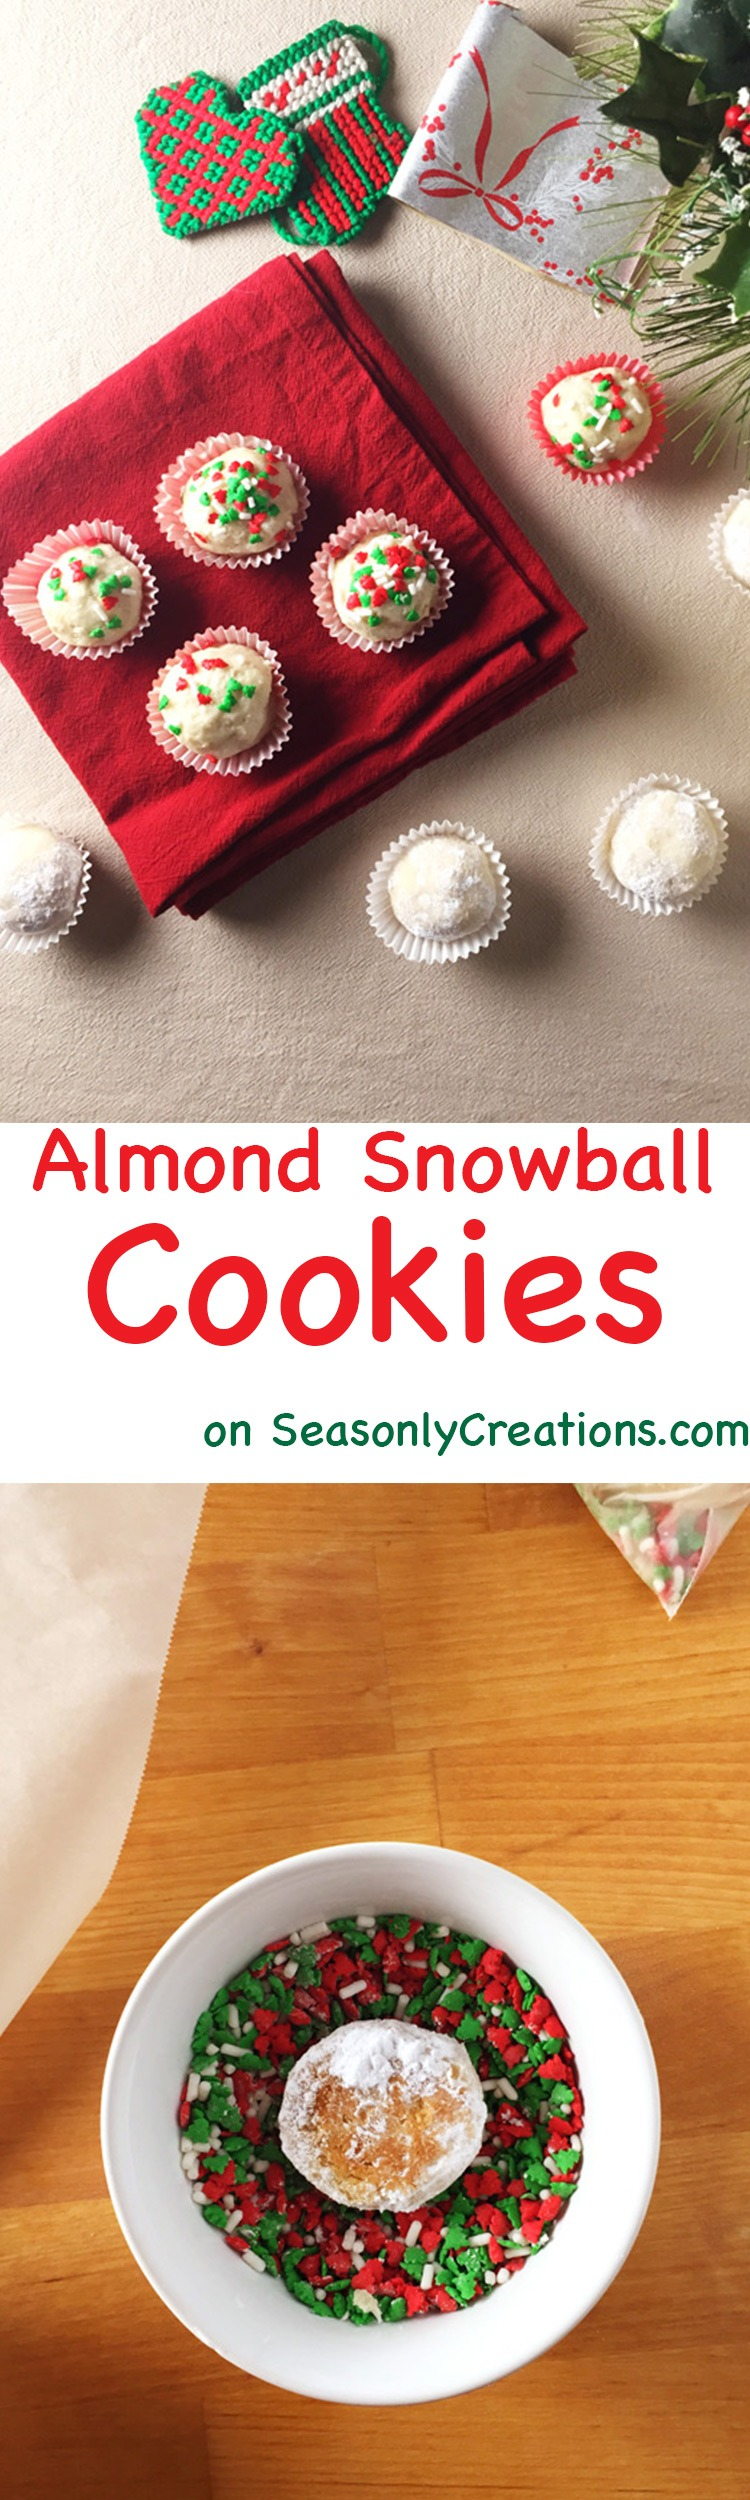 Almond Snowball Cookie recipe, a perfect Christmas cookie option! These cookies only take about 10 minutes to bake, are freezable and make great DIY food gifts for the holidays. Click through for the full cookie recipe and give the gift of your time and creativity with these super cute Almond Snowball Cookies | SeasonlyCreations.com | @SeasonlyBlog